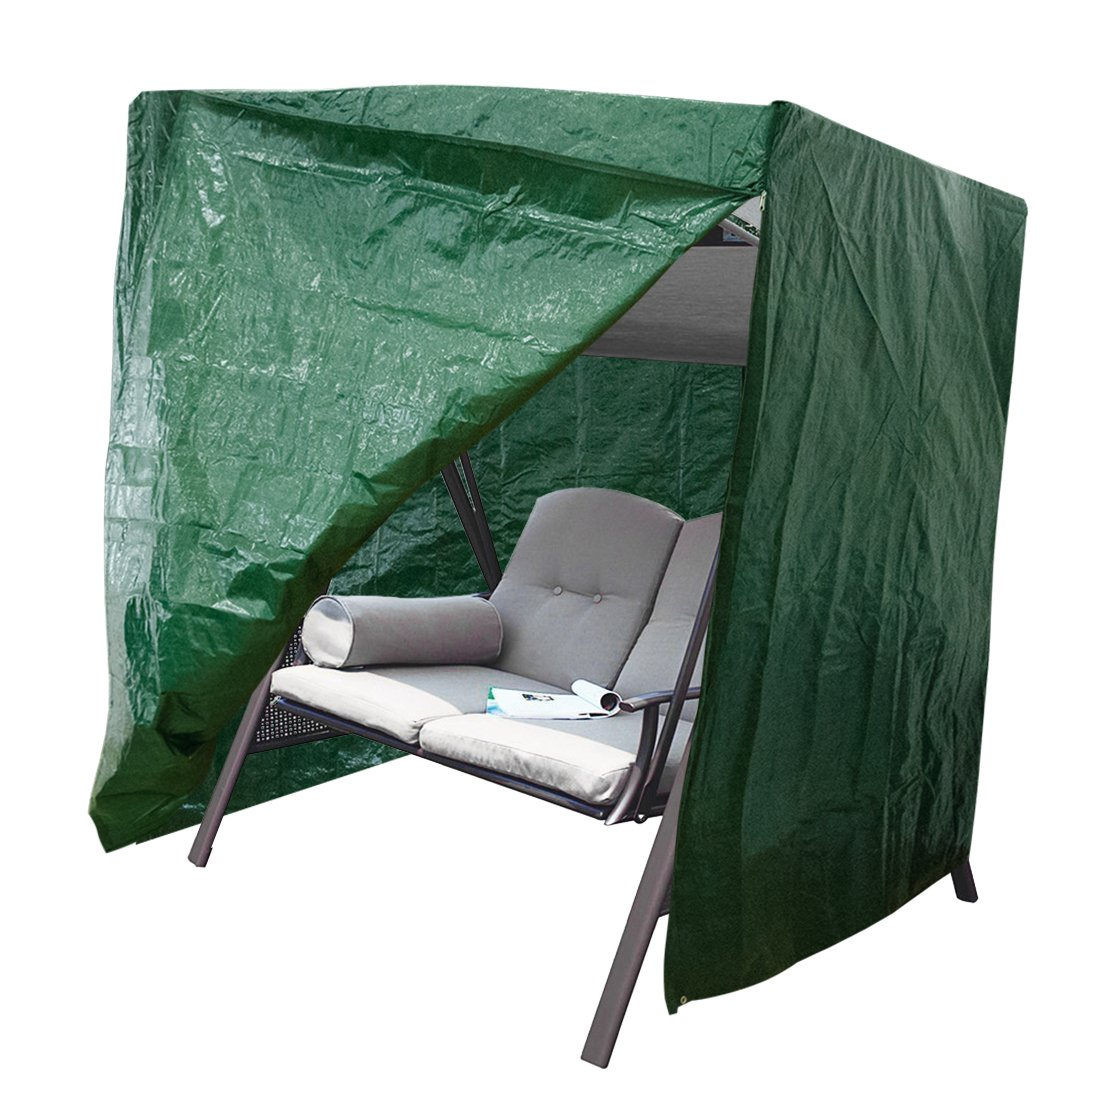 APARESSE Outdoor 2-Seater Hammock Swing Glider Canopy Cover Green, All Weather Protection, Water Resistant, 69''L x 54''W x 69''H